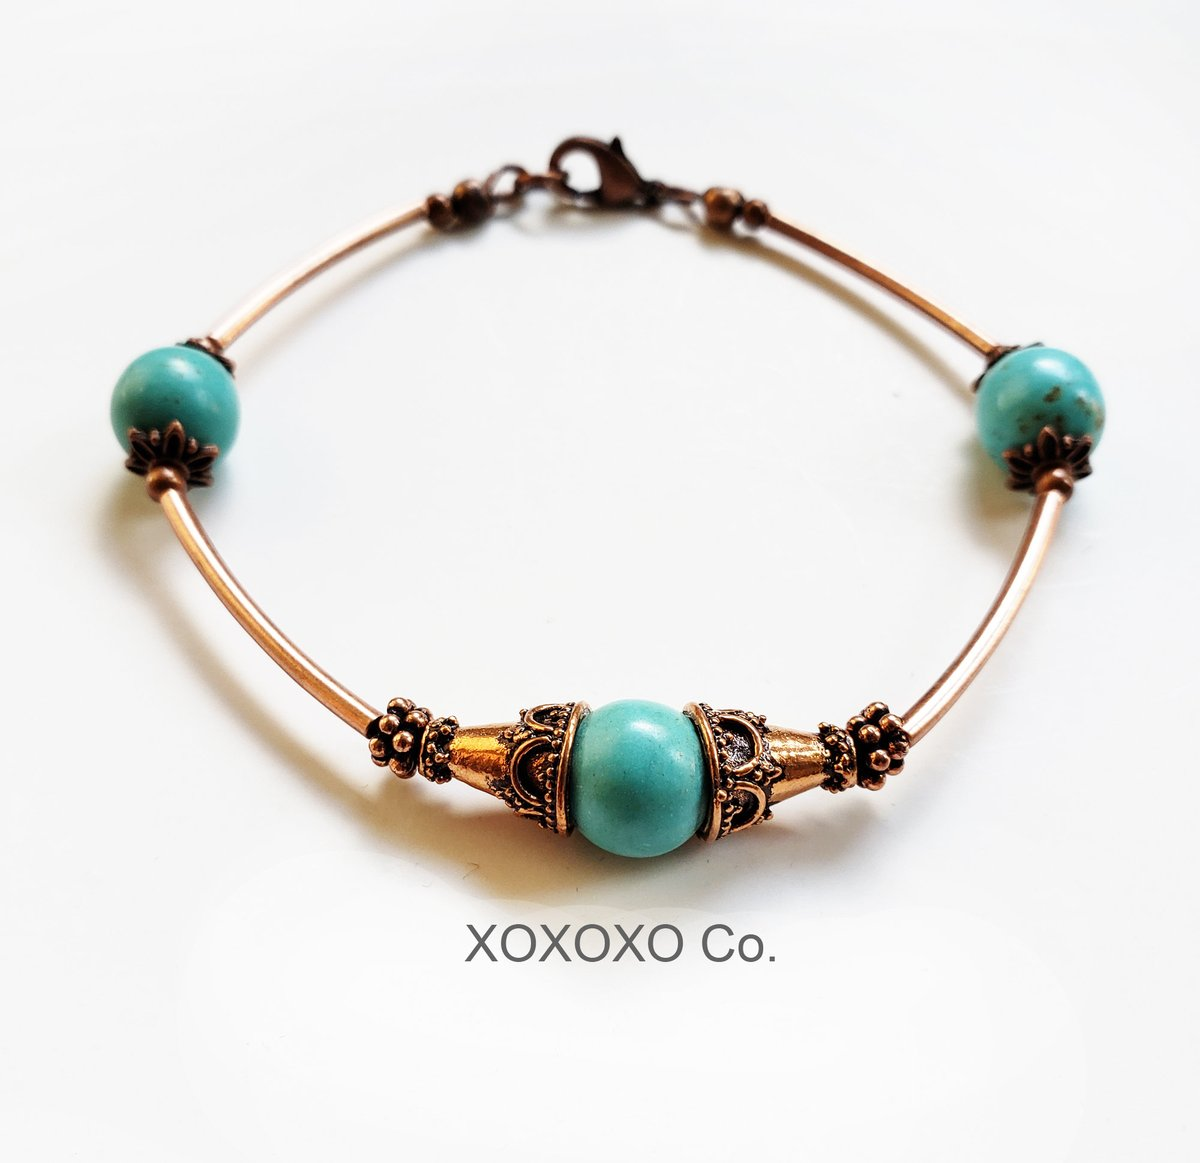 Copper Bracelet with Turquoise Beads and Copper Tube Beads https://t.co/zu0SgQILQg #handmade #Etsy #handmadejewelry #style #christmasgifts #jewelryblogger #fashion #giftsforher #shopsmall https://t.co/p2e4cvjile